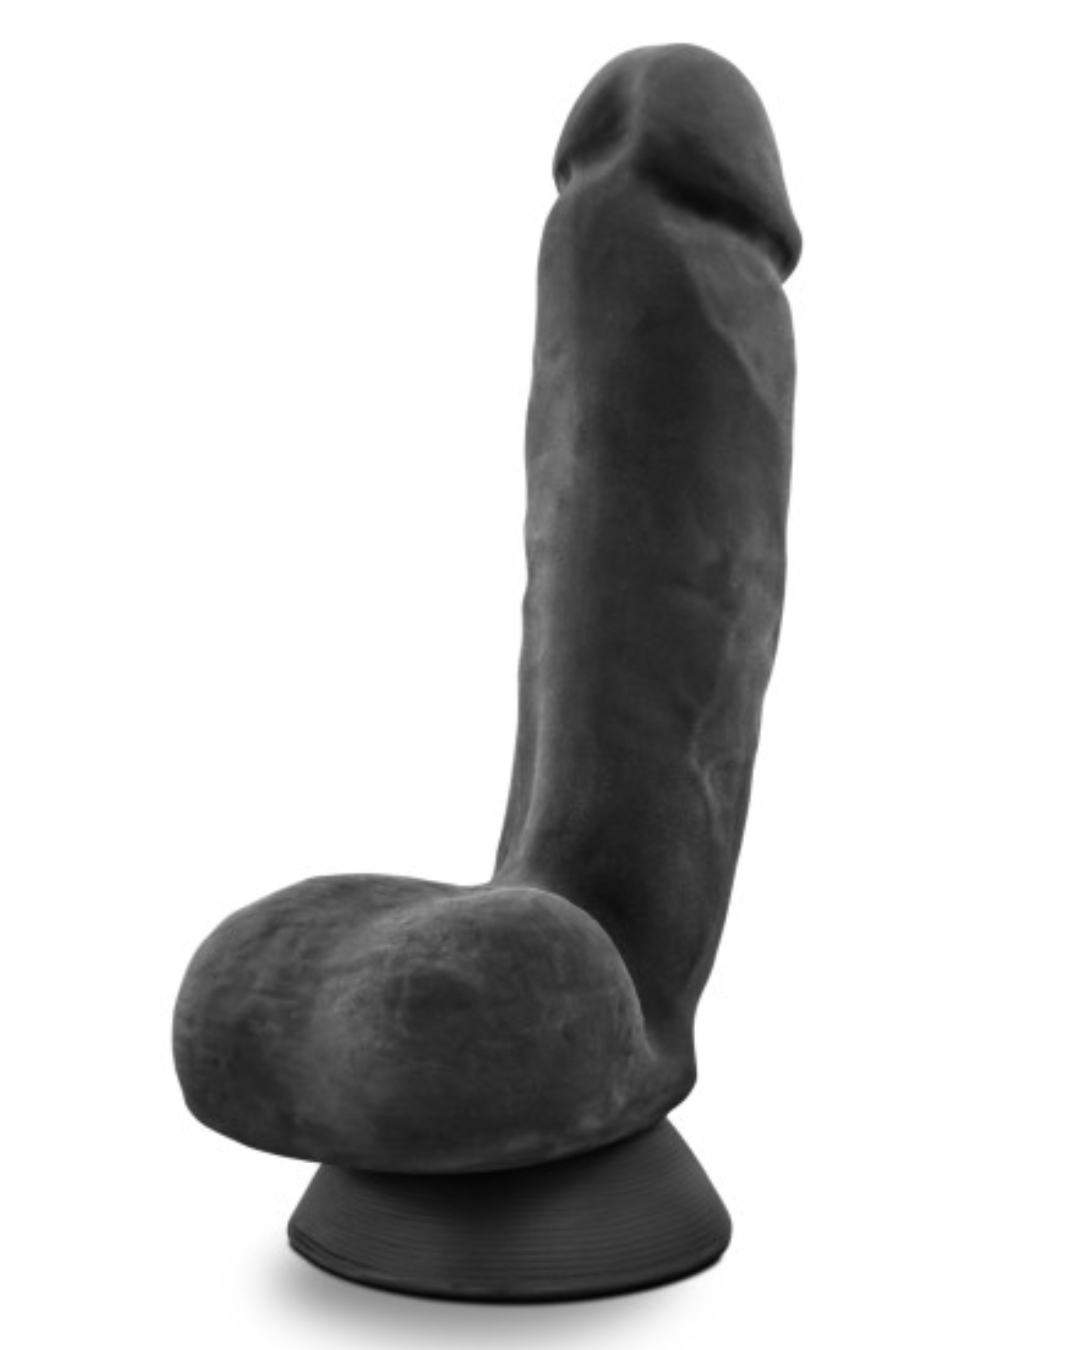 Au Naturel Bold Pound 8.5 Inch Sensa Feel Suction Cup Dildo by Blush - Black back view of the testicles